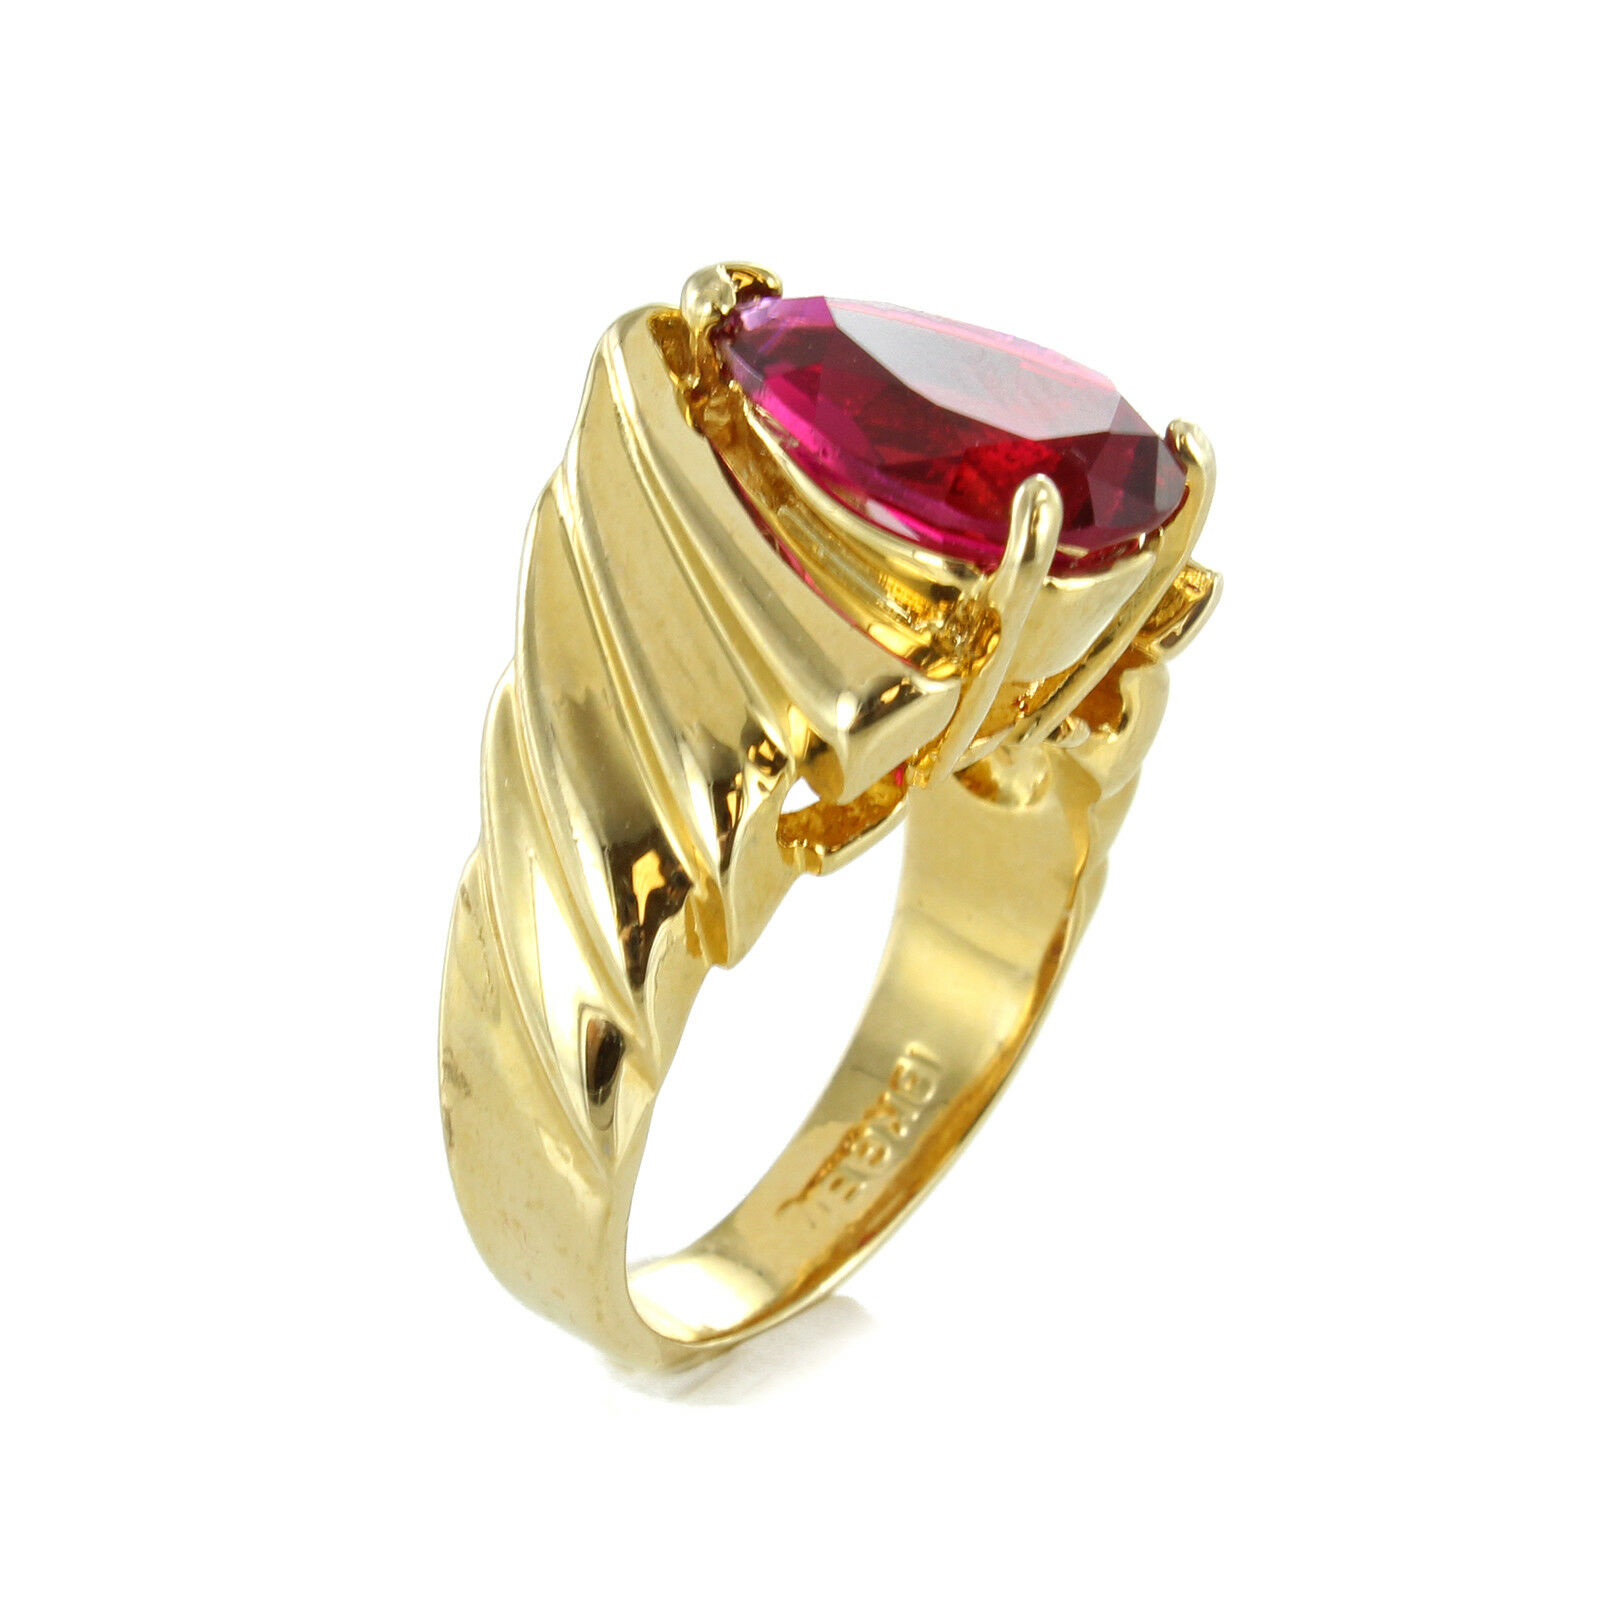 18k gold Electroplated with Simulated Ruby and Cubic Zirconia Ring Size 8